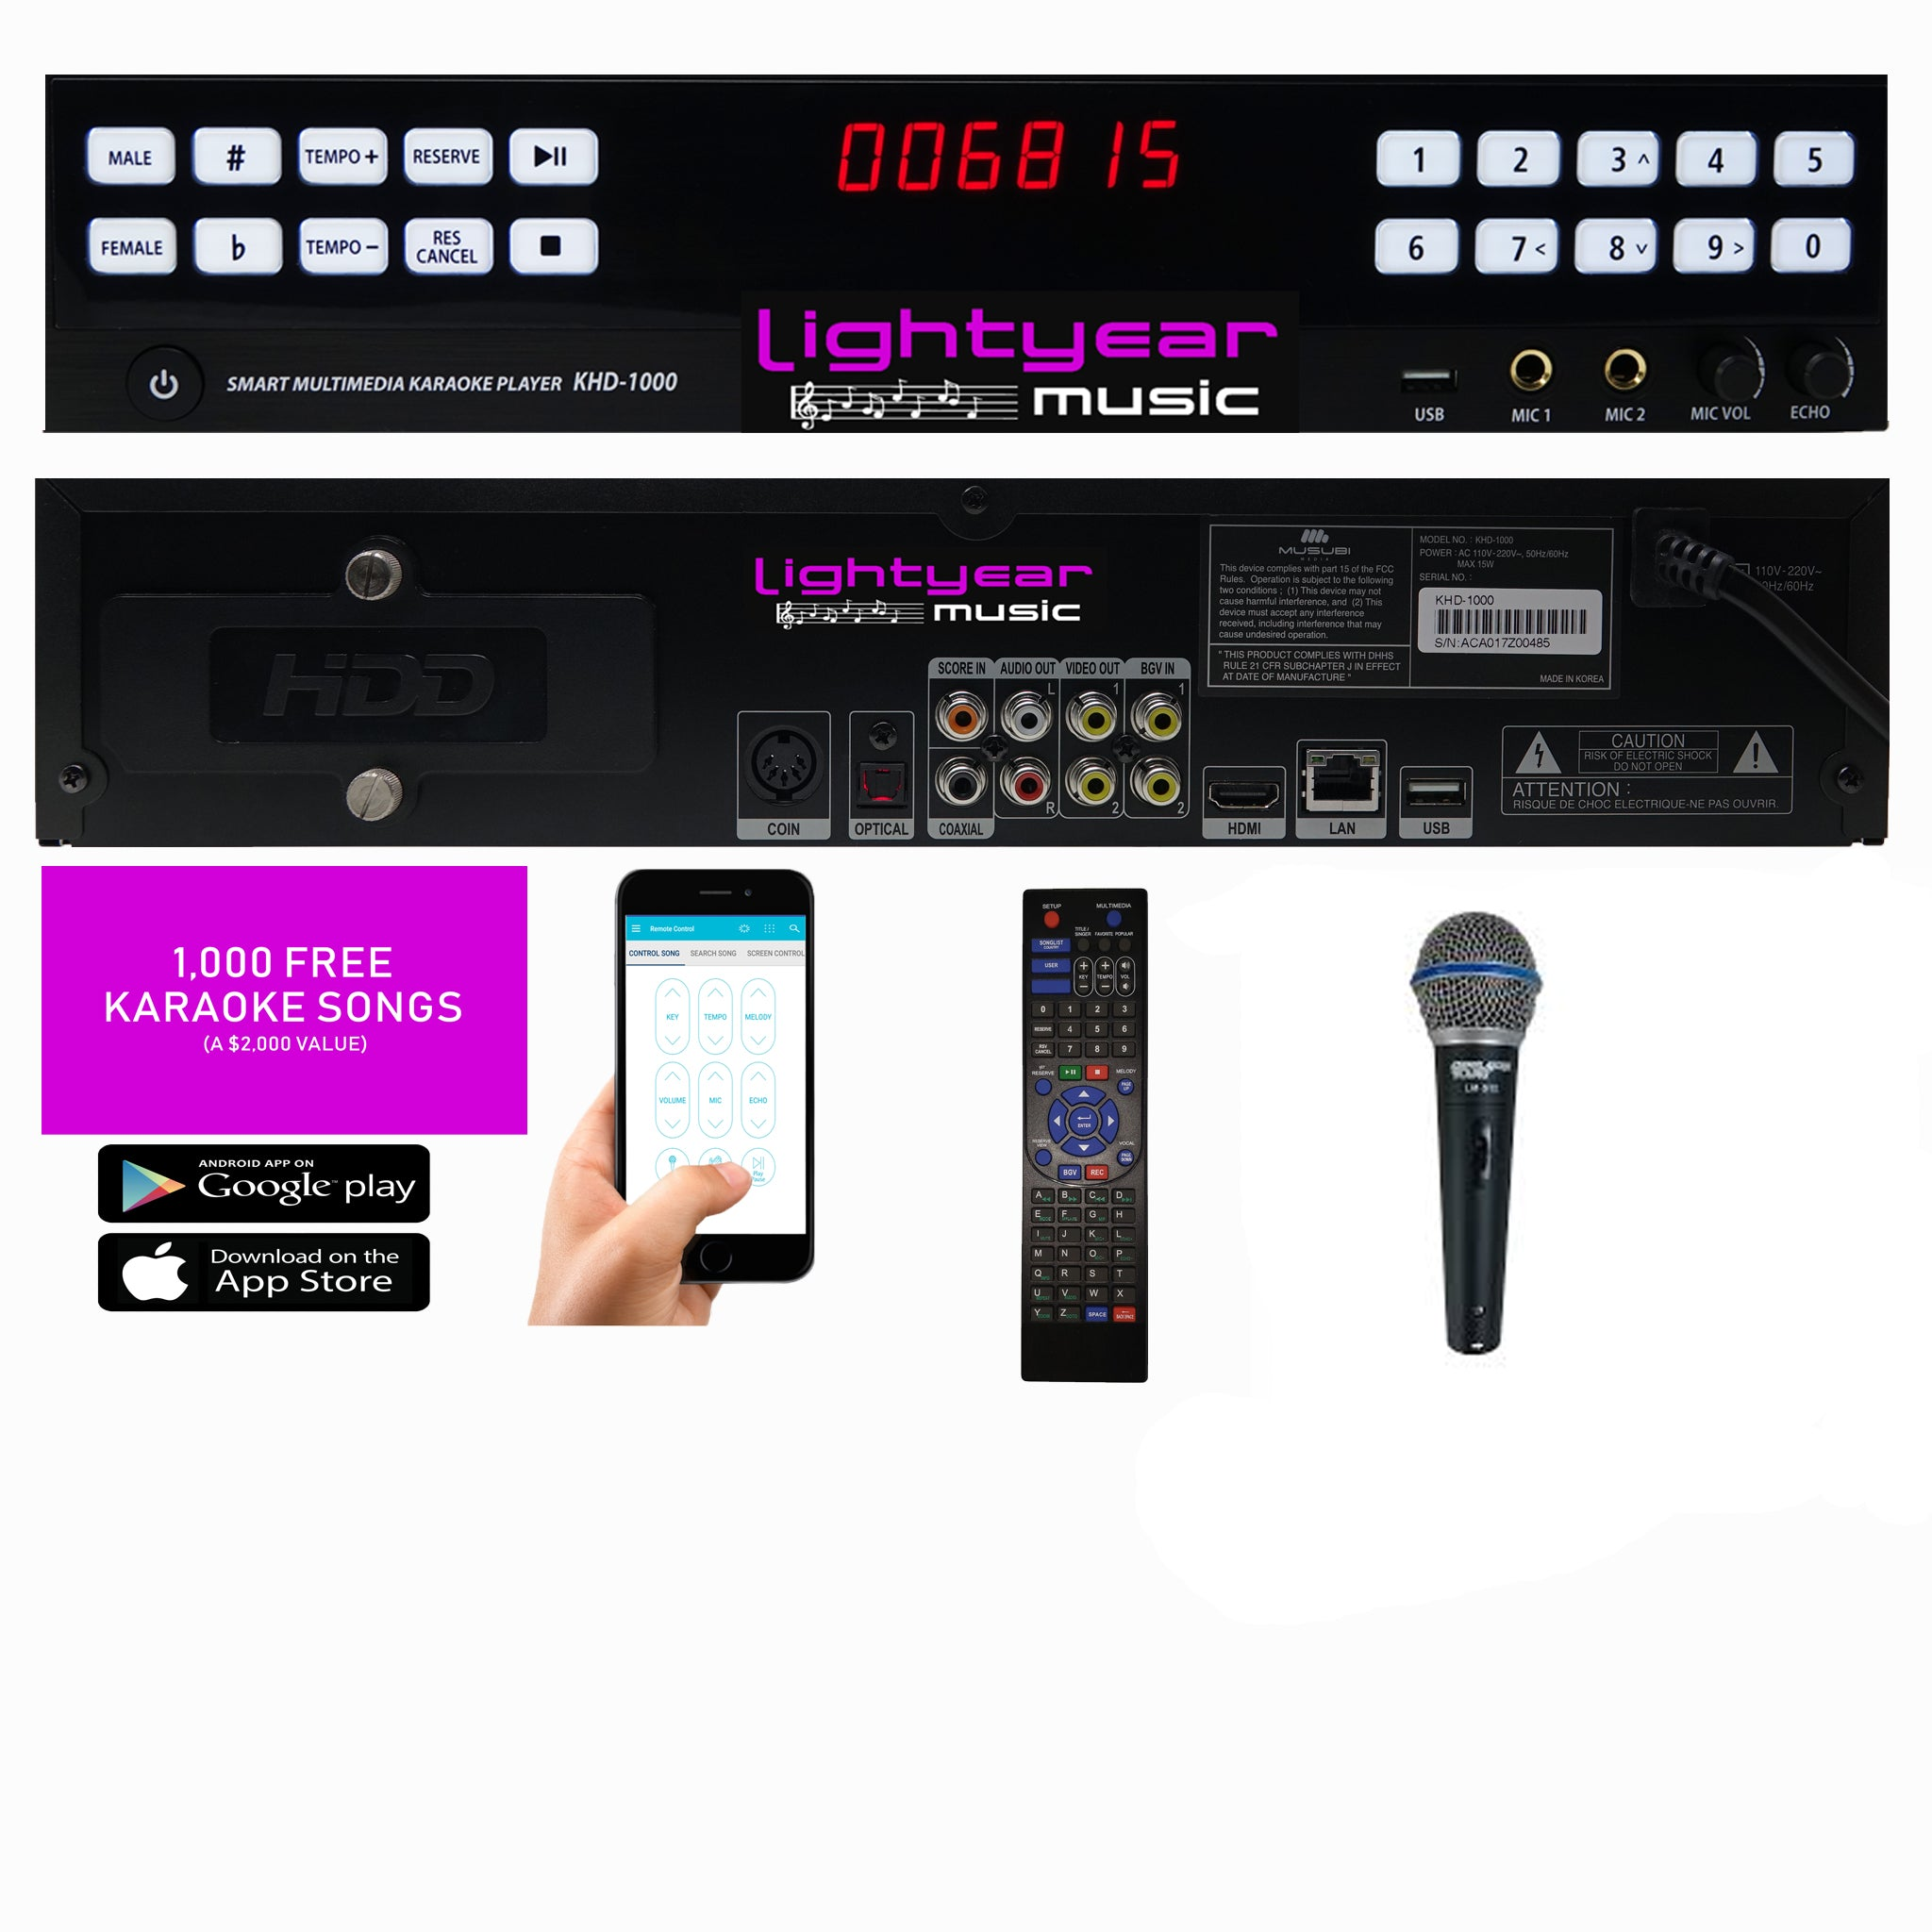 Karaoke Room | Best Karaoke Player | Bluetooth Digital Karaoke Machine | Wired Mics | 1,000 FREE Karaoke Songs